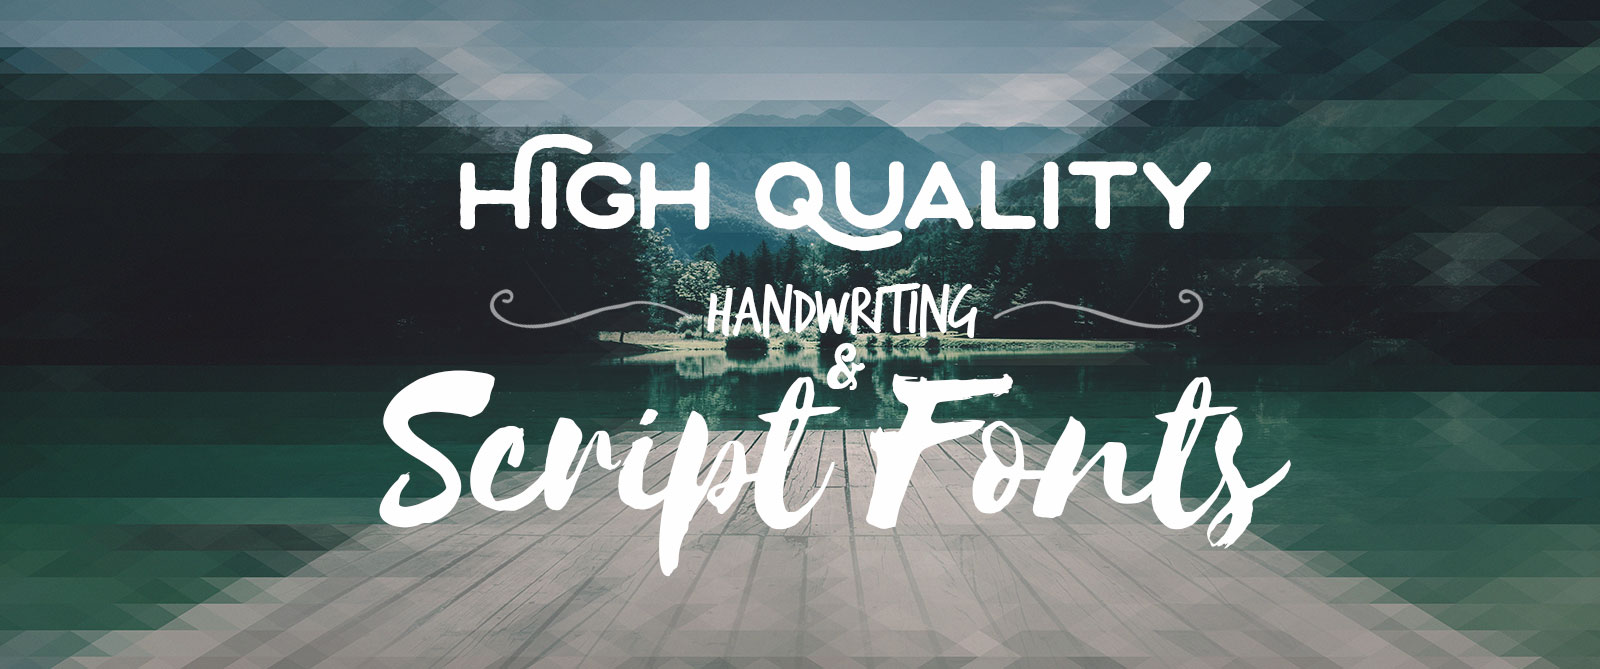 75 High Quality Free Fonts Handwriting Script Brush